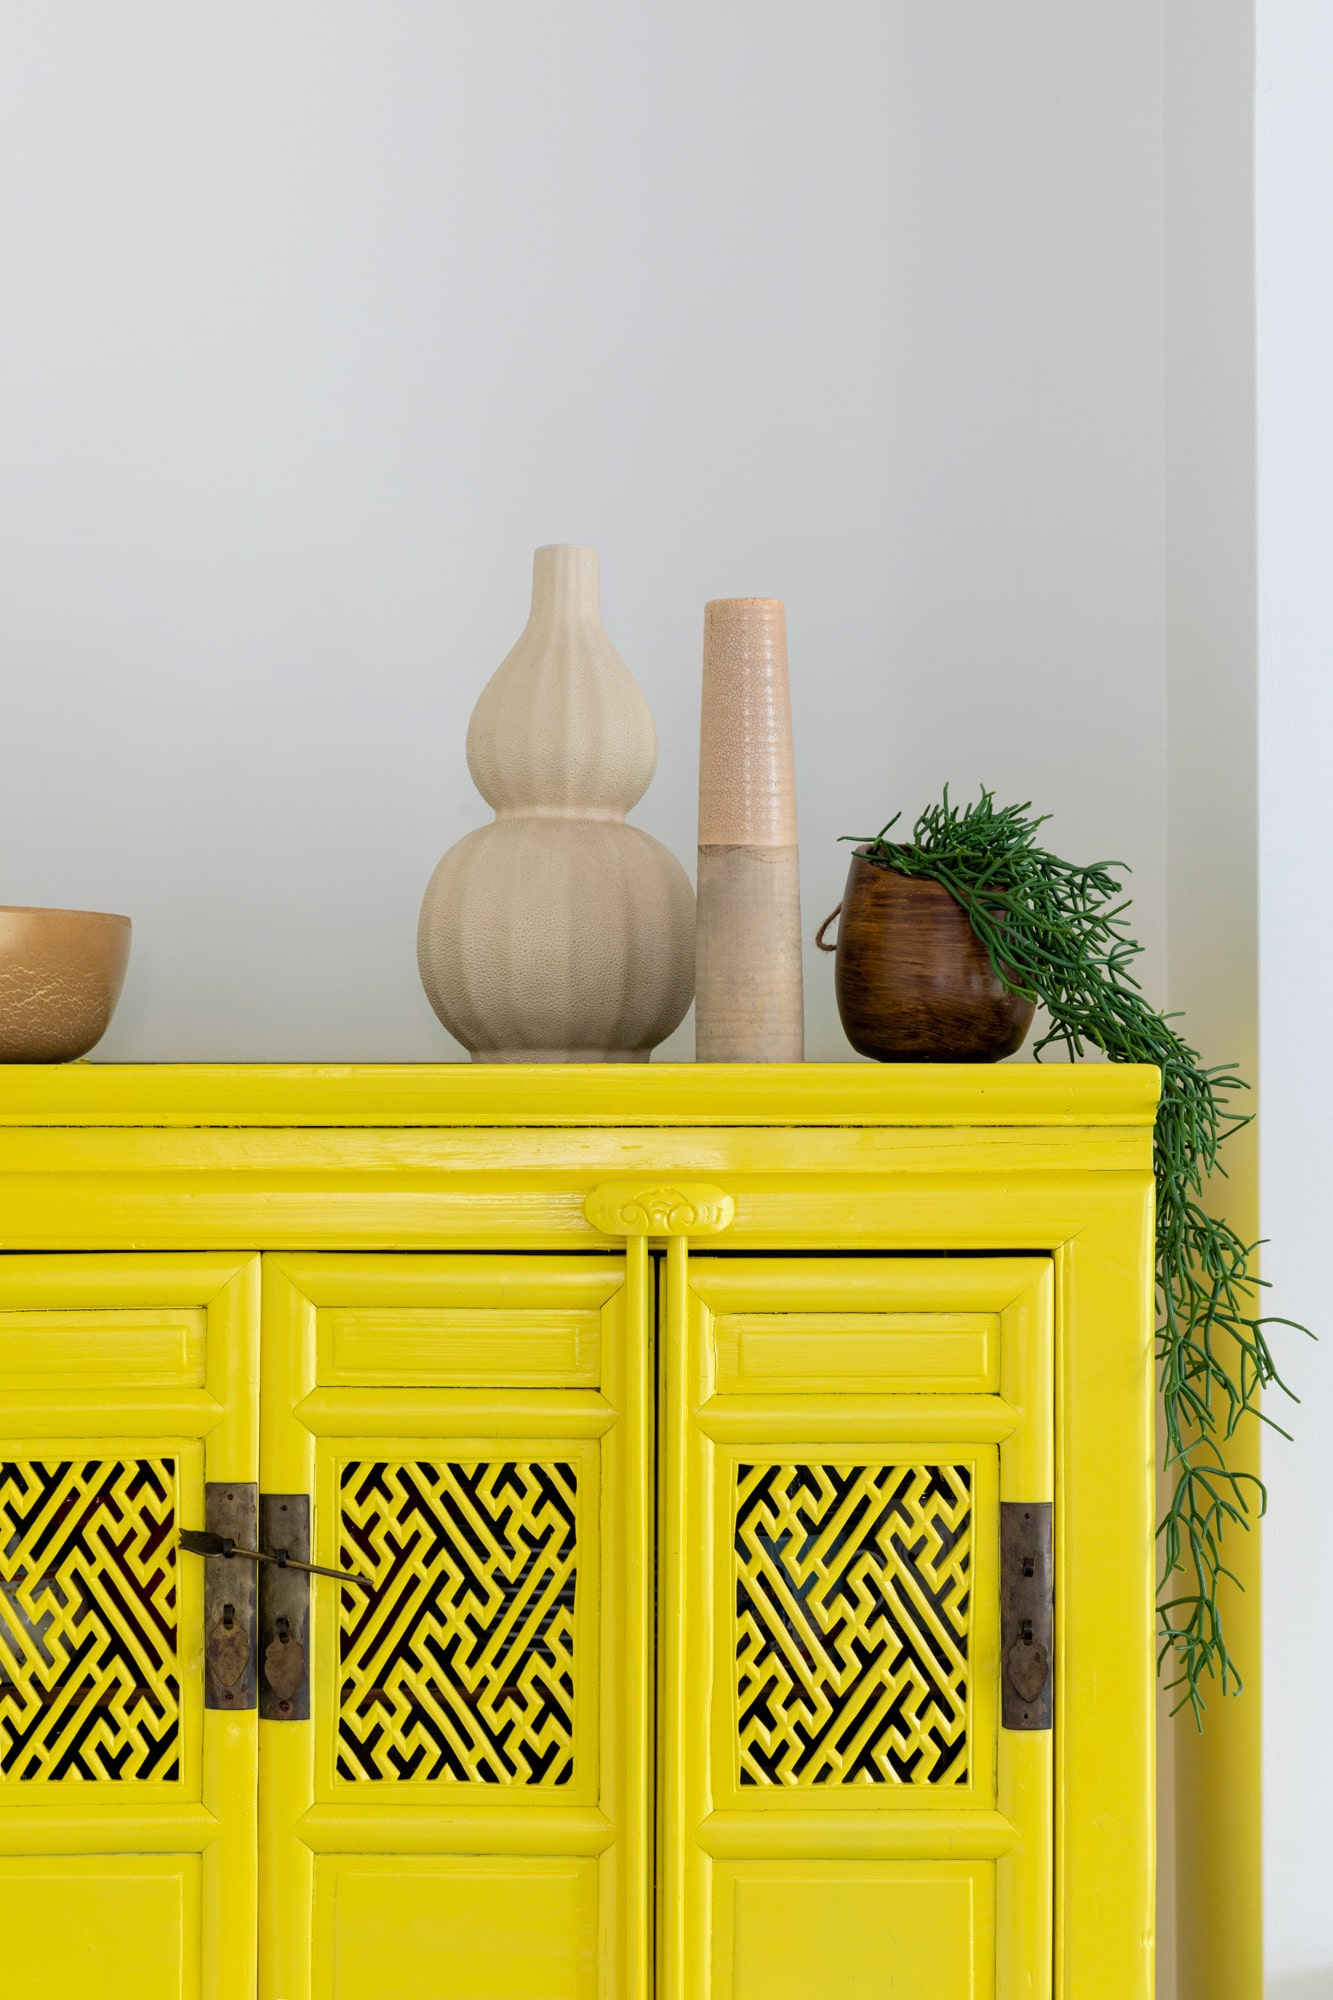 Interior photo detail: yellow cabimet with vases and plant on top